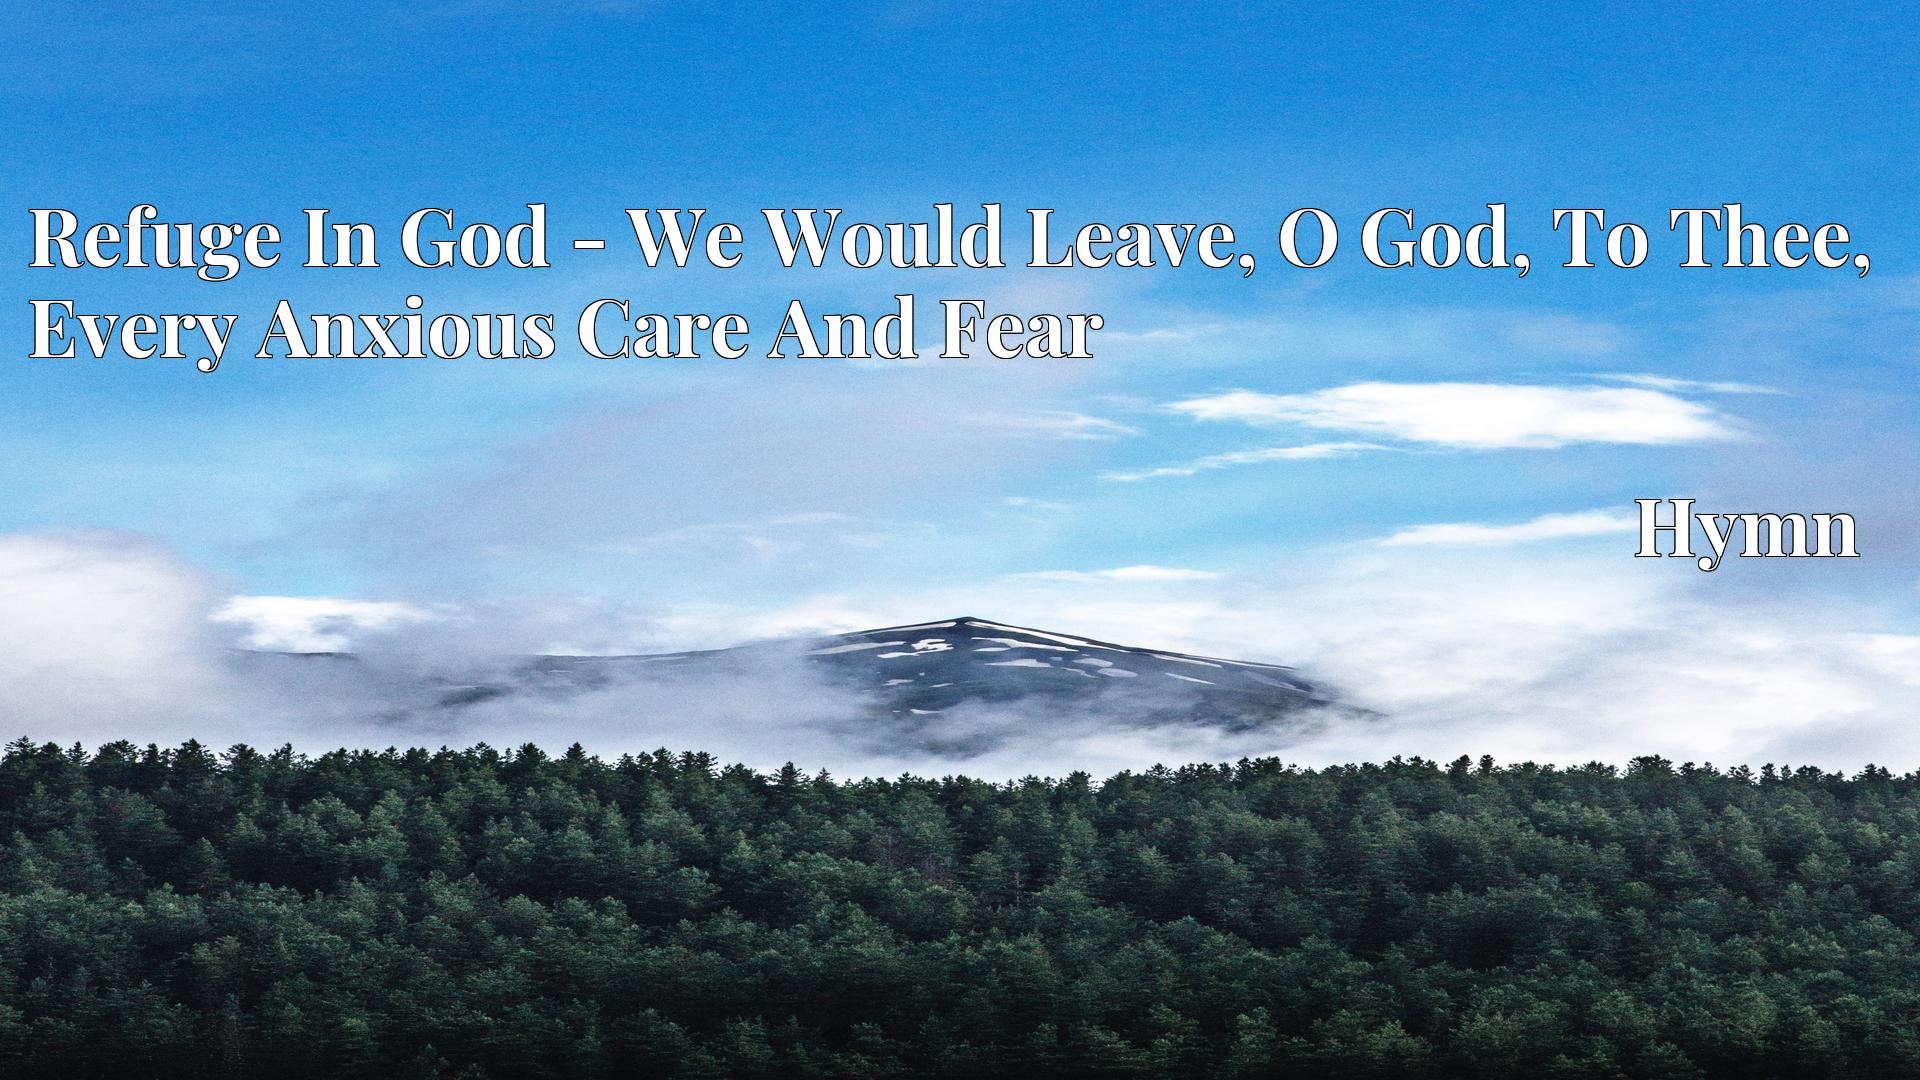 Refuge In God - We Would Leave, O God, To Thee, Every Anxious Care And Fear - Hymn